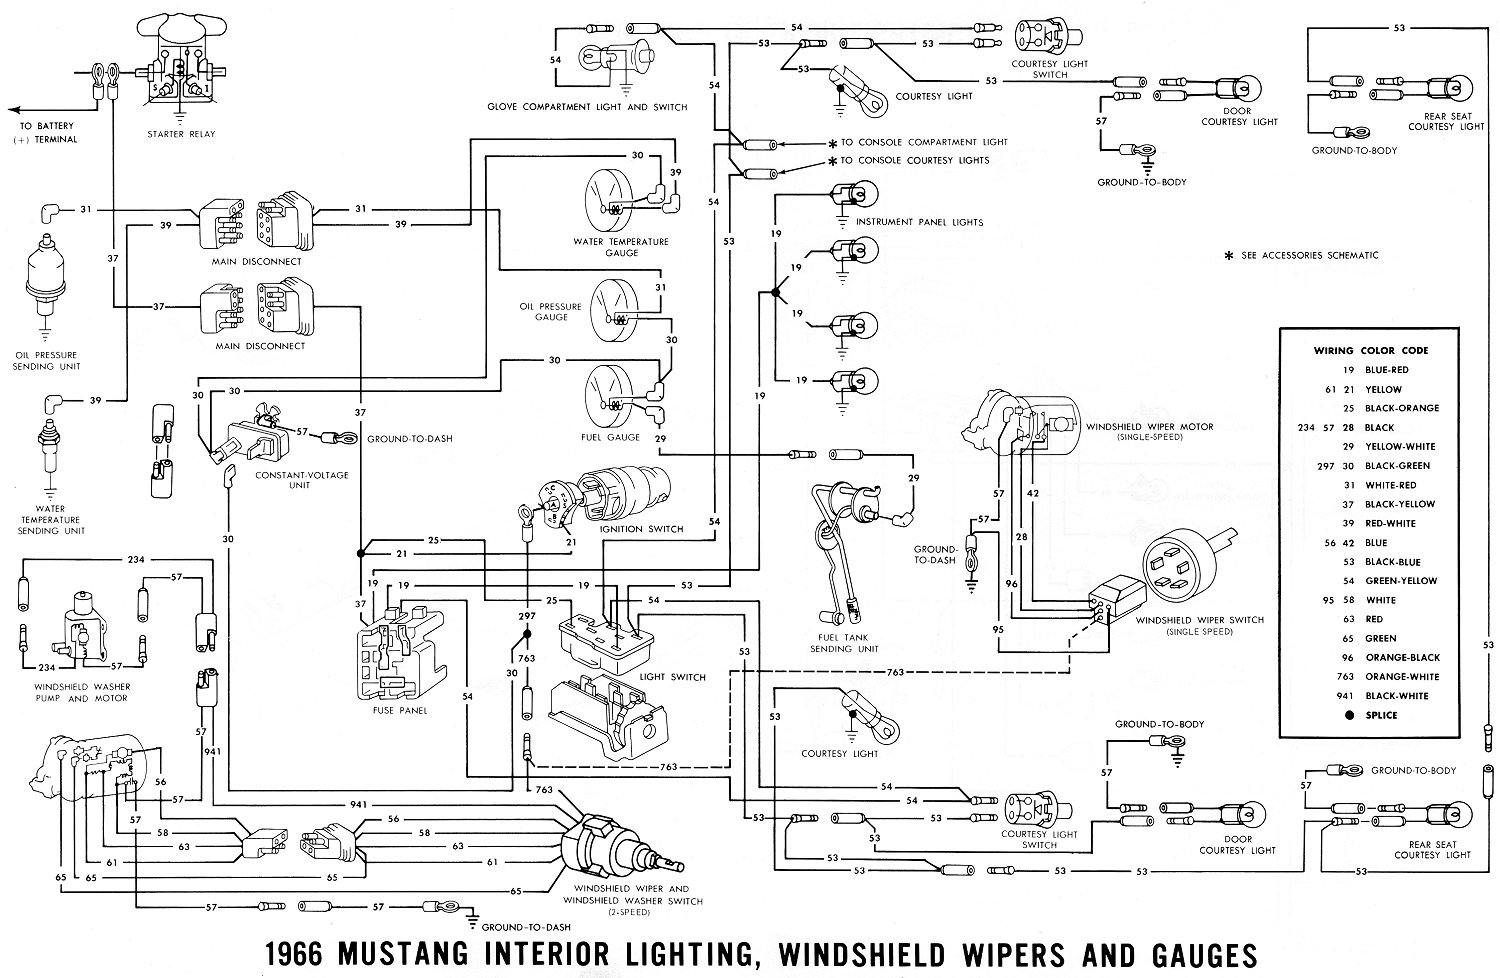 66inter1 1966 mustang wiring diagrams average joe restoration engine wiring diagram 1967 mustang v8 at mifinder.co